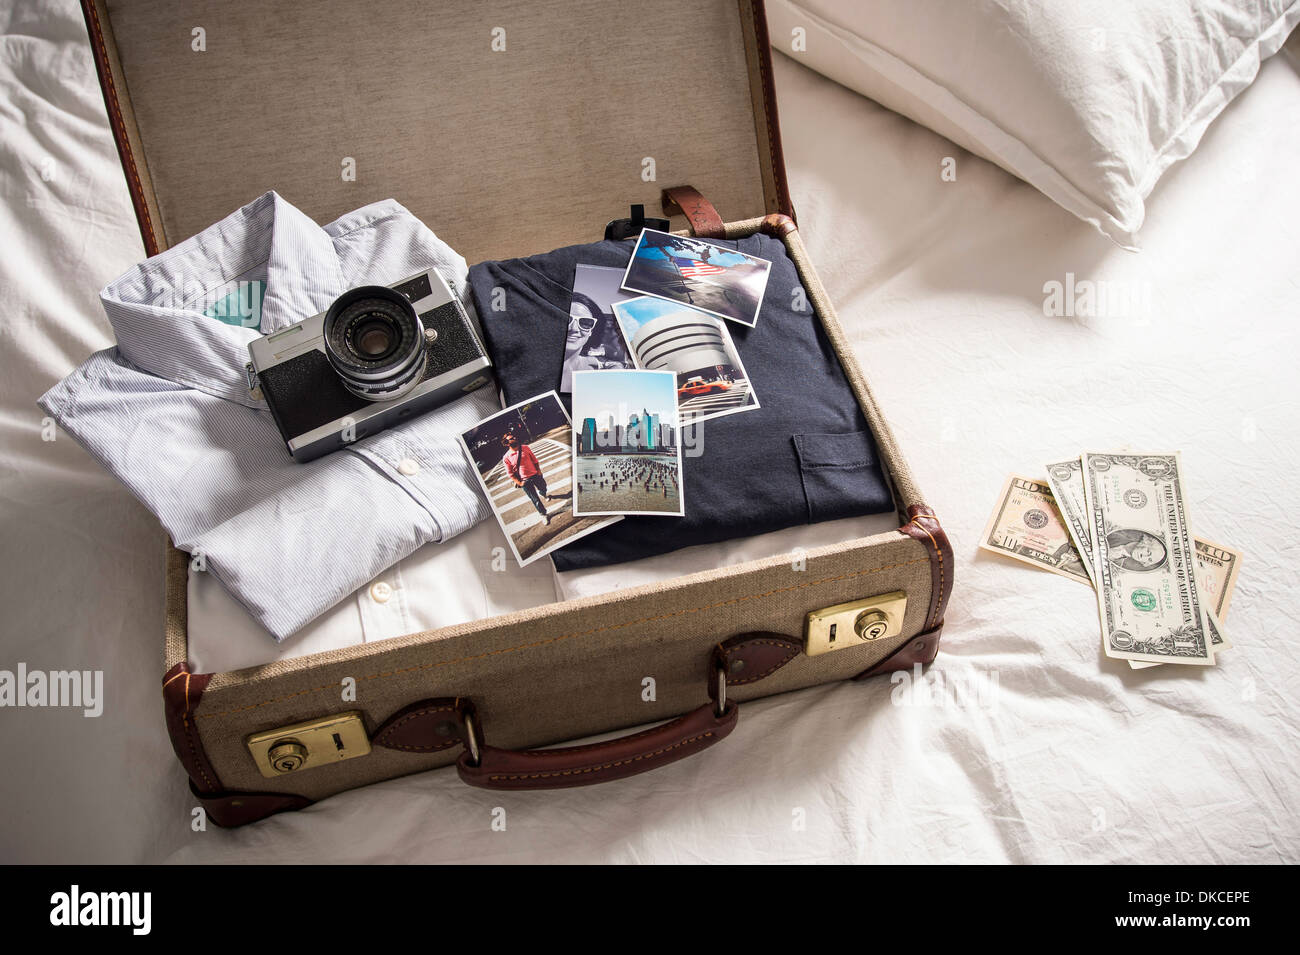 Open suitcase on bed with camera and photographs - Stock Image